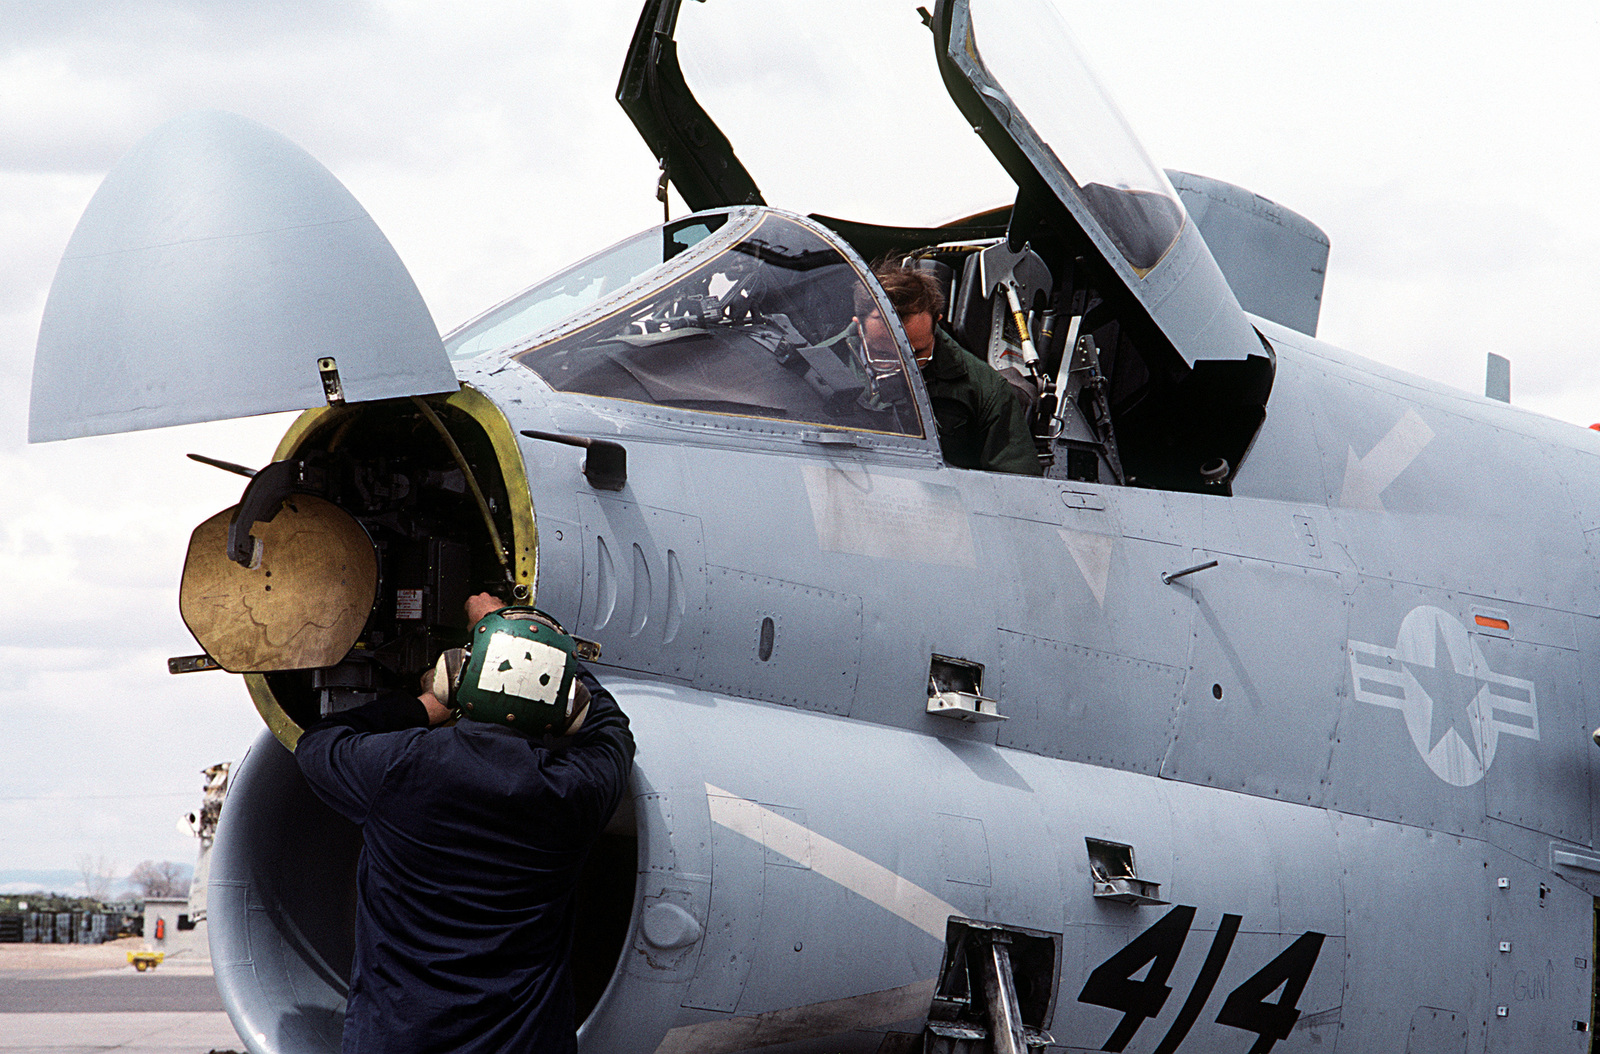 A ground crewman performs maintenance on the APQ-126 radar equipment located in the nose of an A-7 Corsair II aircraft from Carrier Air Wing 6 (CVW-6)